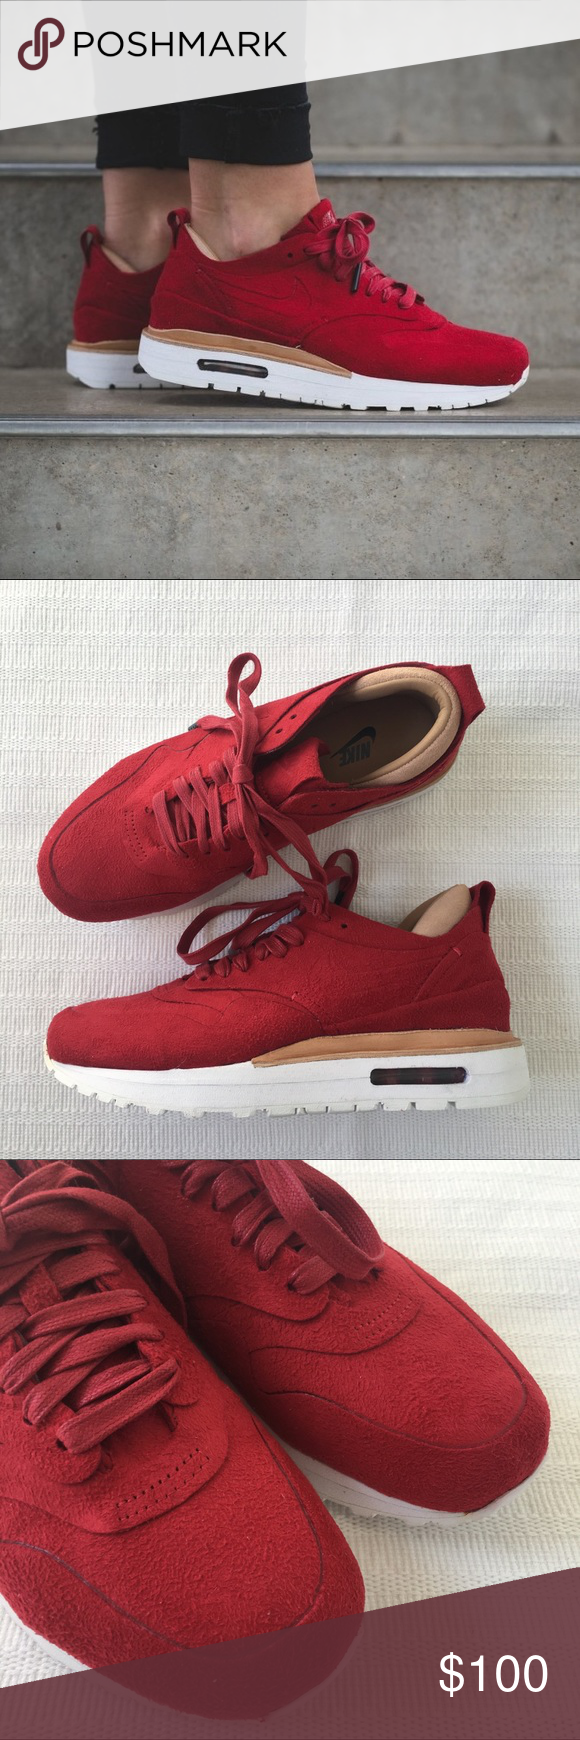 Shop Women's Nike Red size 10 Sneakers at a discounted price at Poshmark.  Description: Women's Nike Air Max 1 Royal Red Sneakers features a synthetic  suede ...